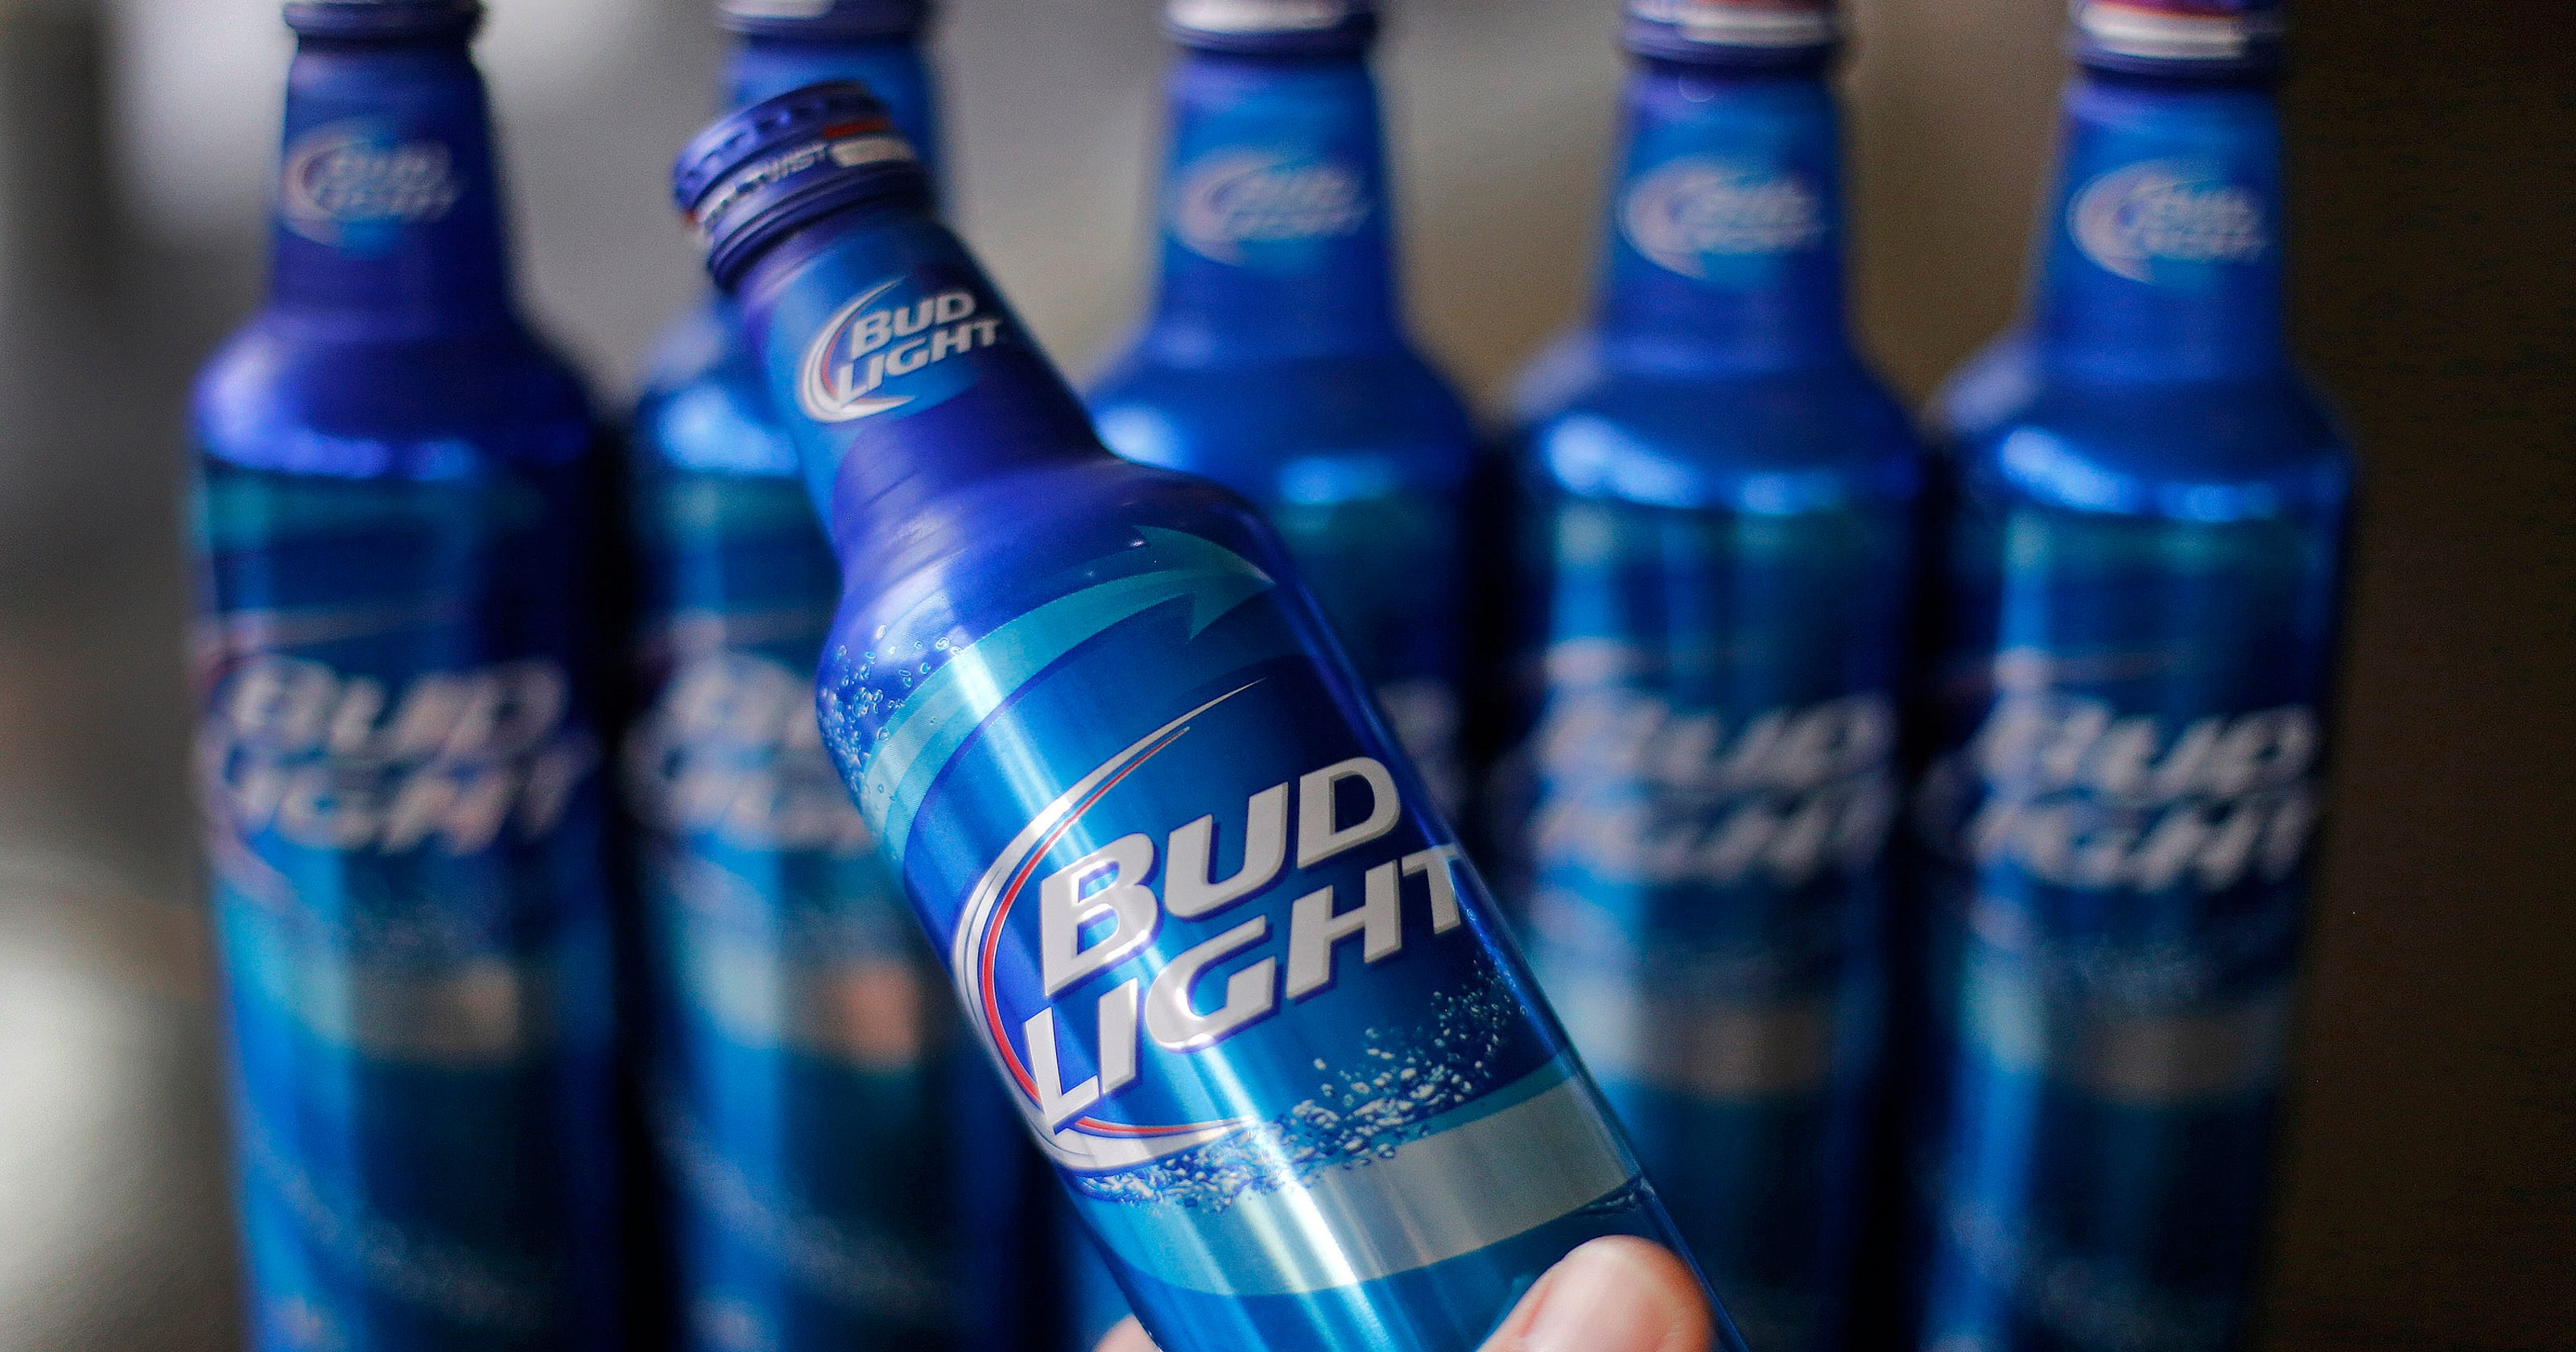 bud light apologizes for removing no label